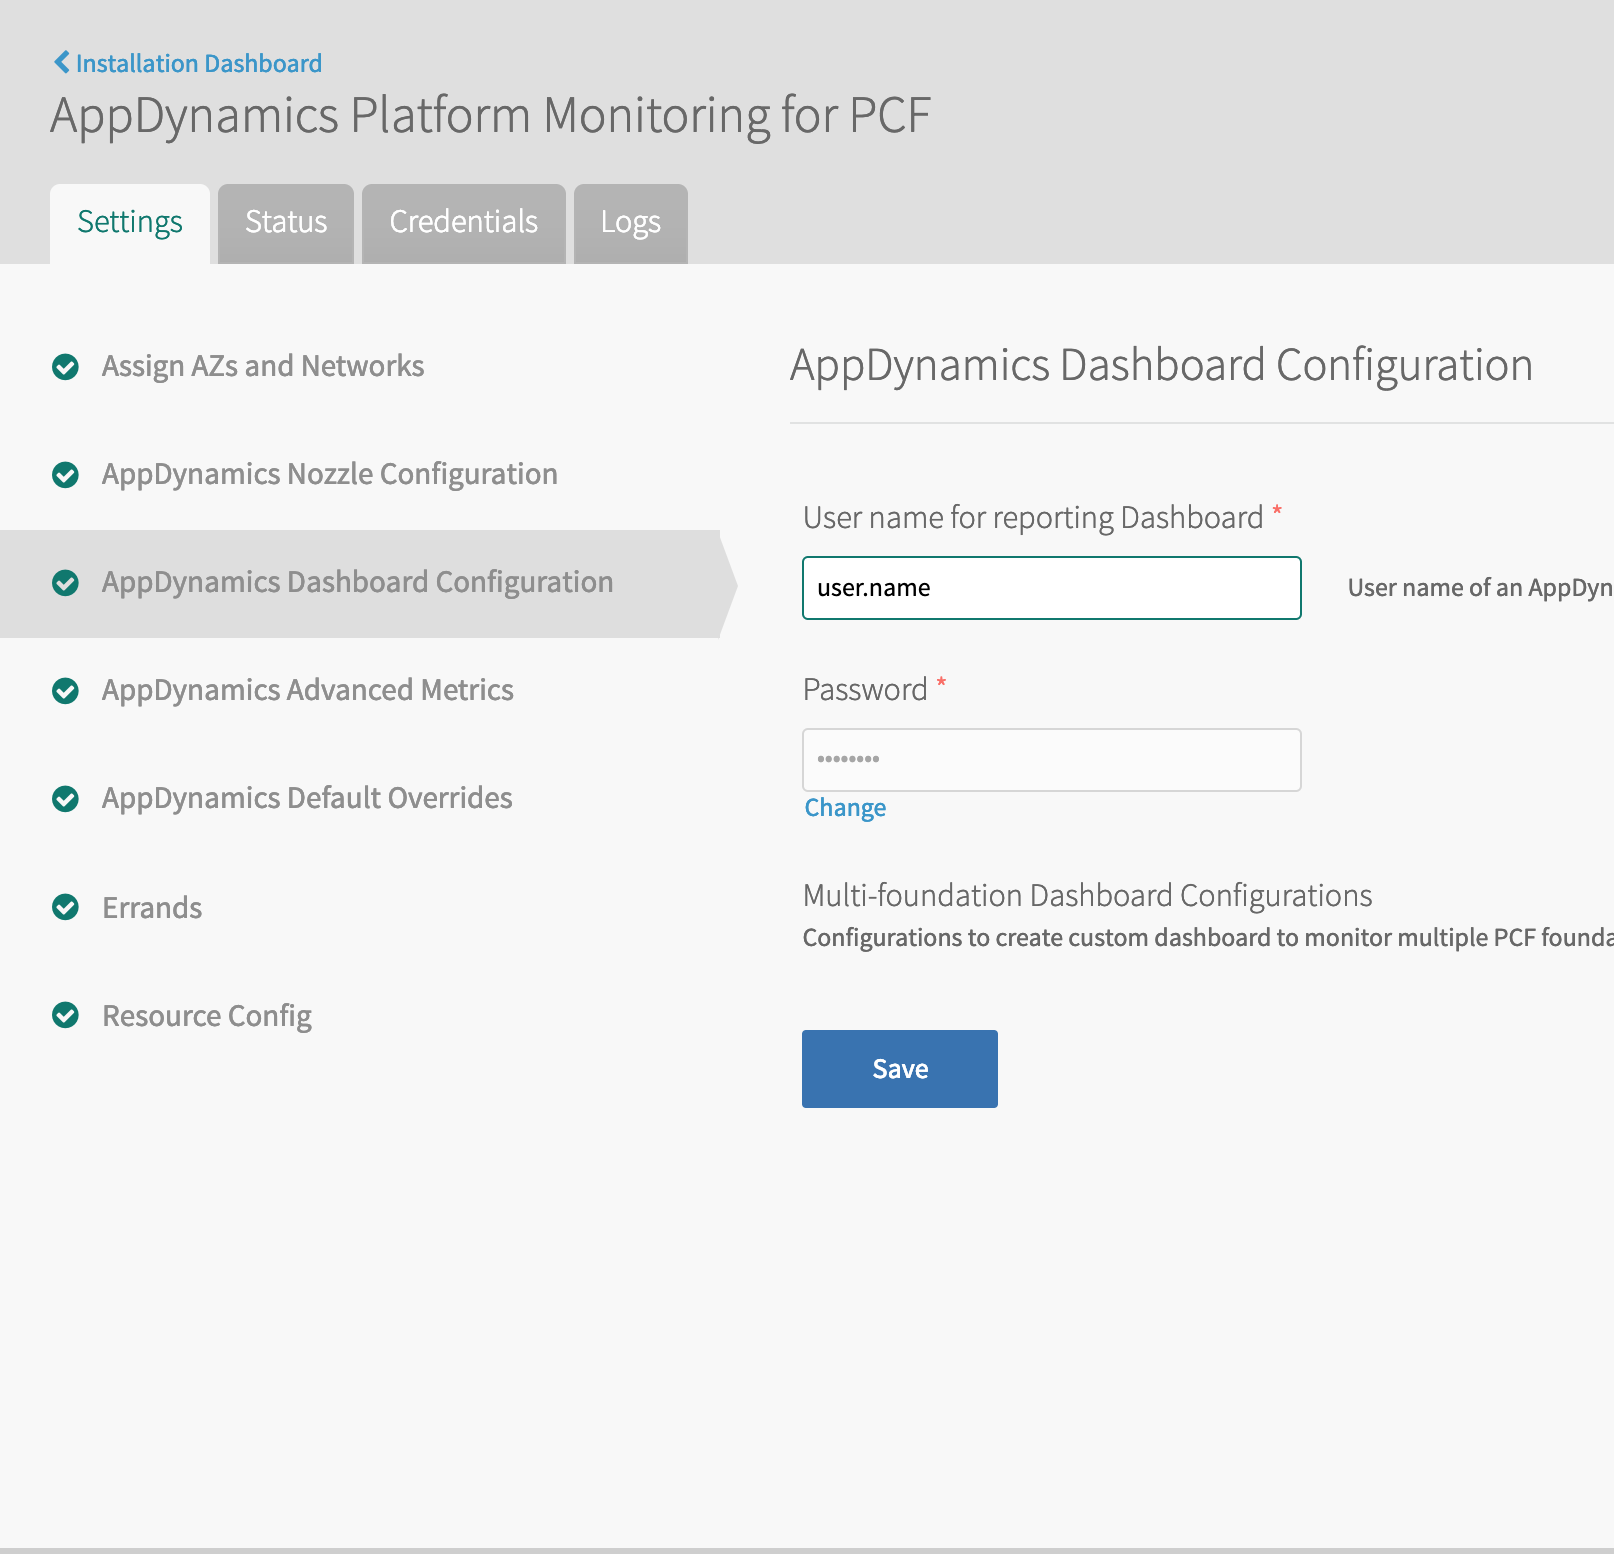 Installing and Configuring AppDynamics Platform Monitoring